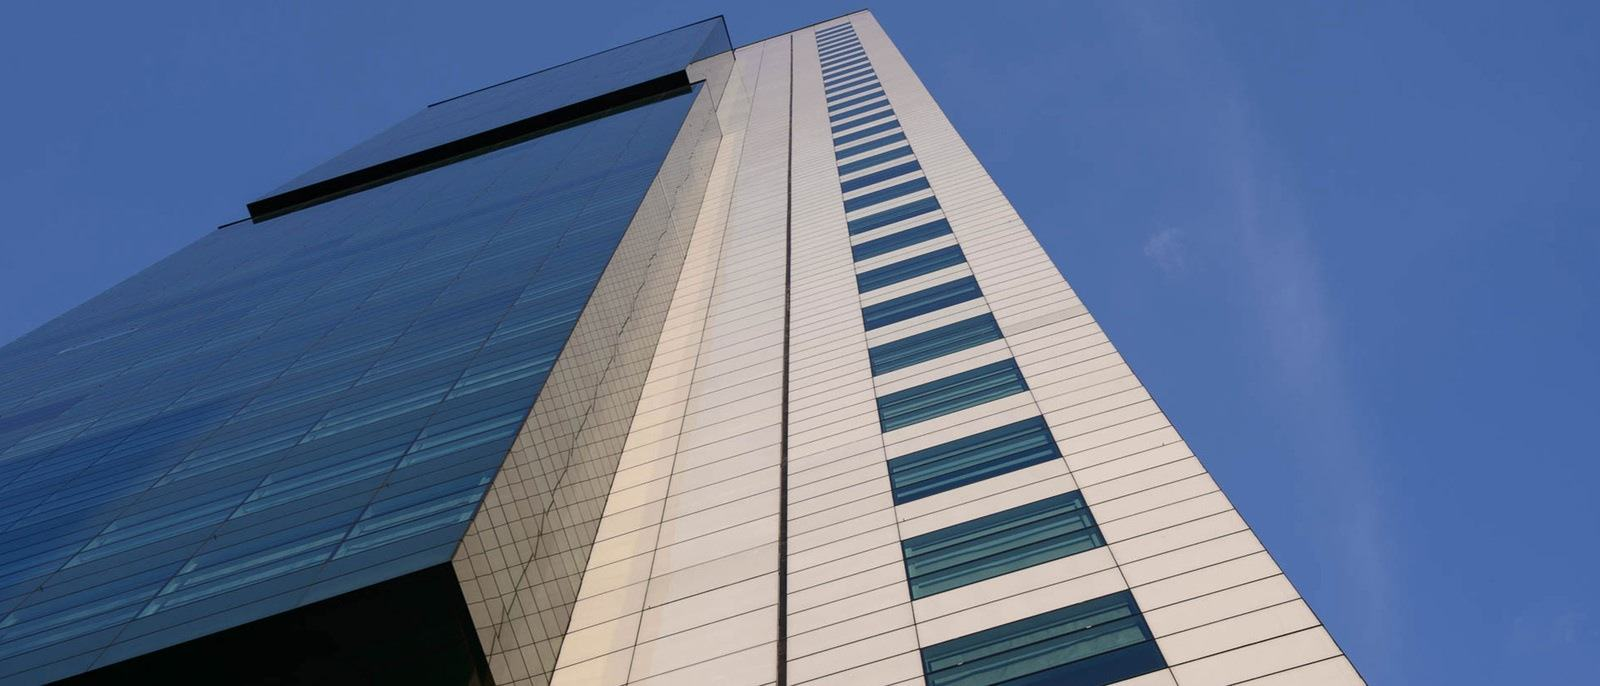 A tall building with brown walls and tinted windows pointing towards the blue sky.